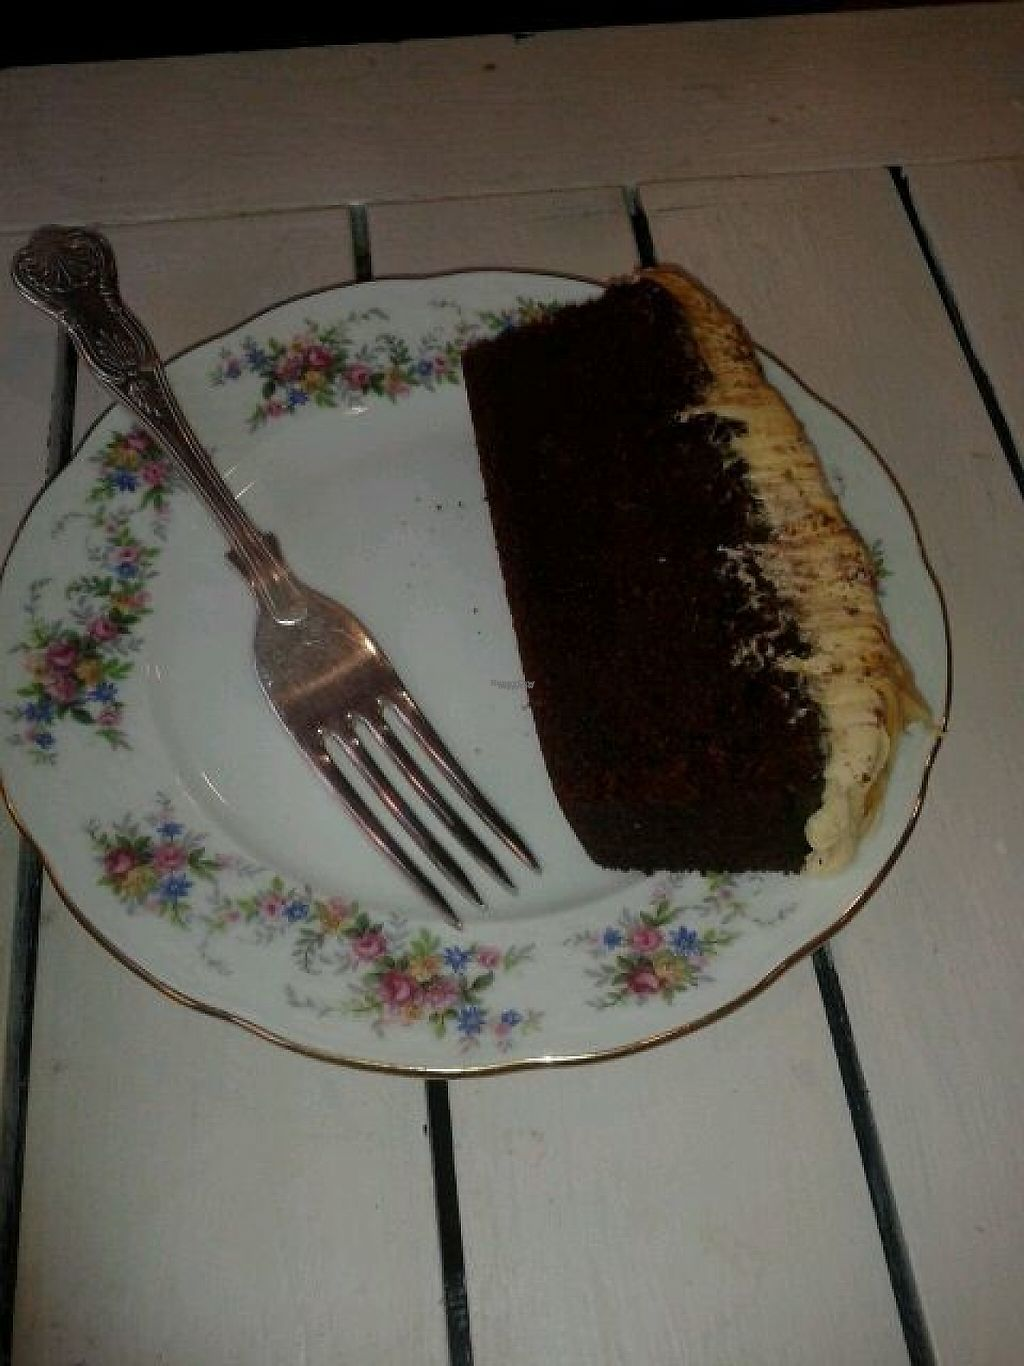 """Photo of Wildflower Creative Kitchen  by <a href=""""/members/profile/deadpledge"""">deadpledge</a> <br/>Chocolate caramel cake <br/> February 6, 2017  - <a href='/contact/abuse/image/82039/223723'>Report</a>"""